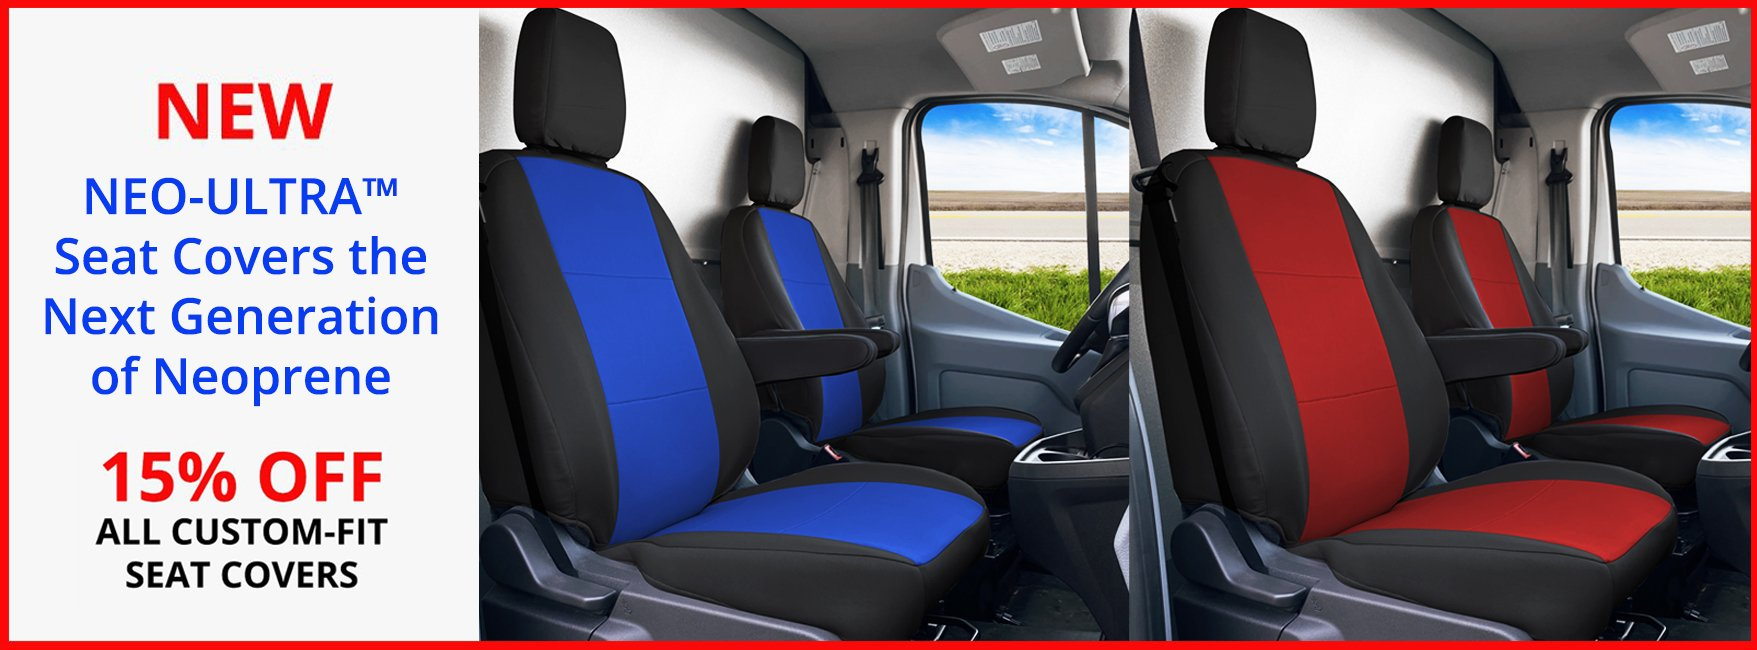 NEO-ULTRA™  Seat Covers the Next Generation of Neoprene